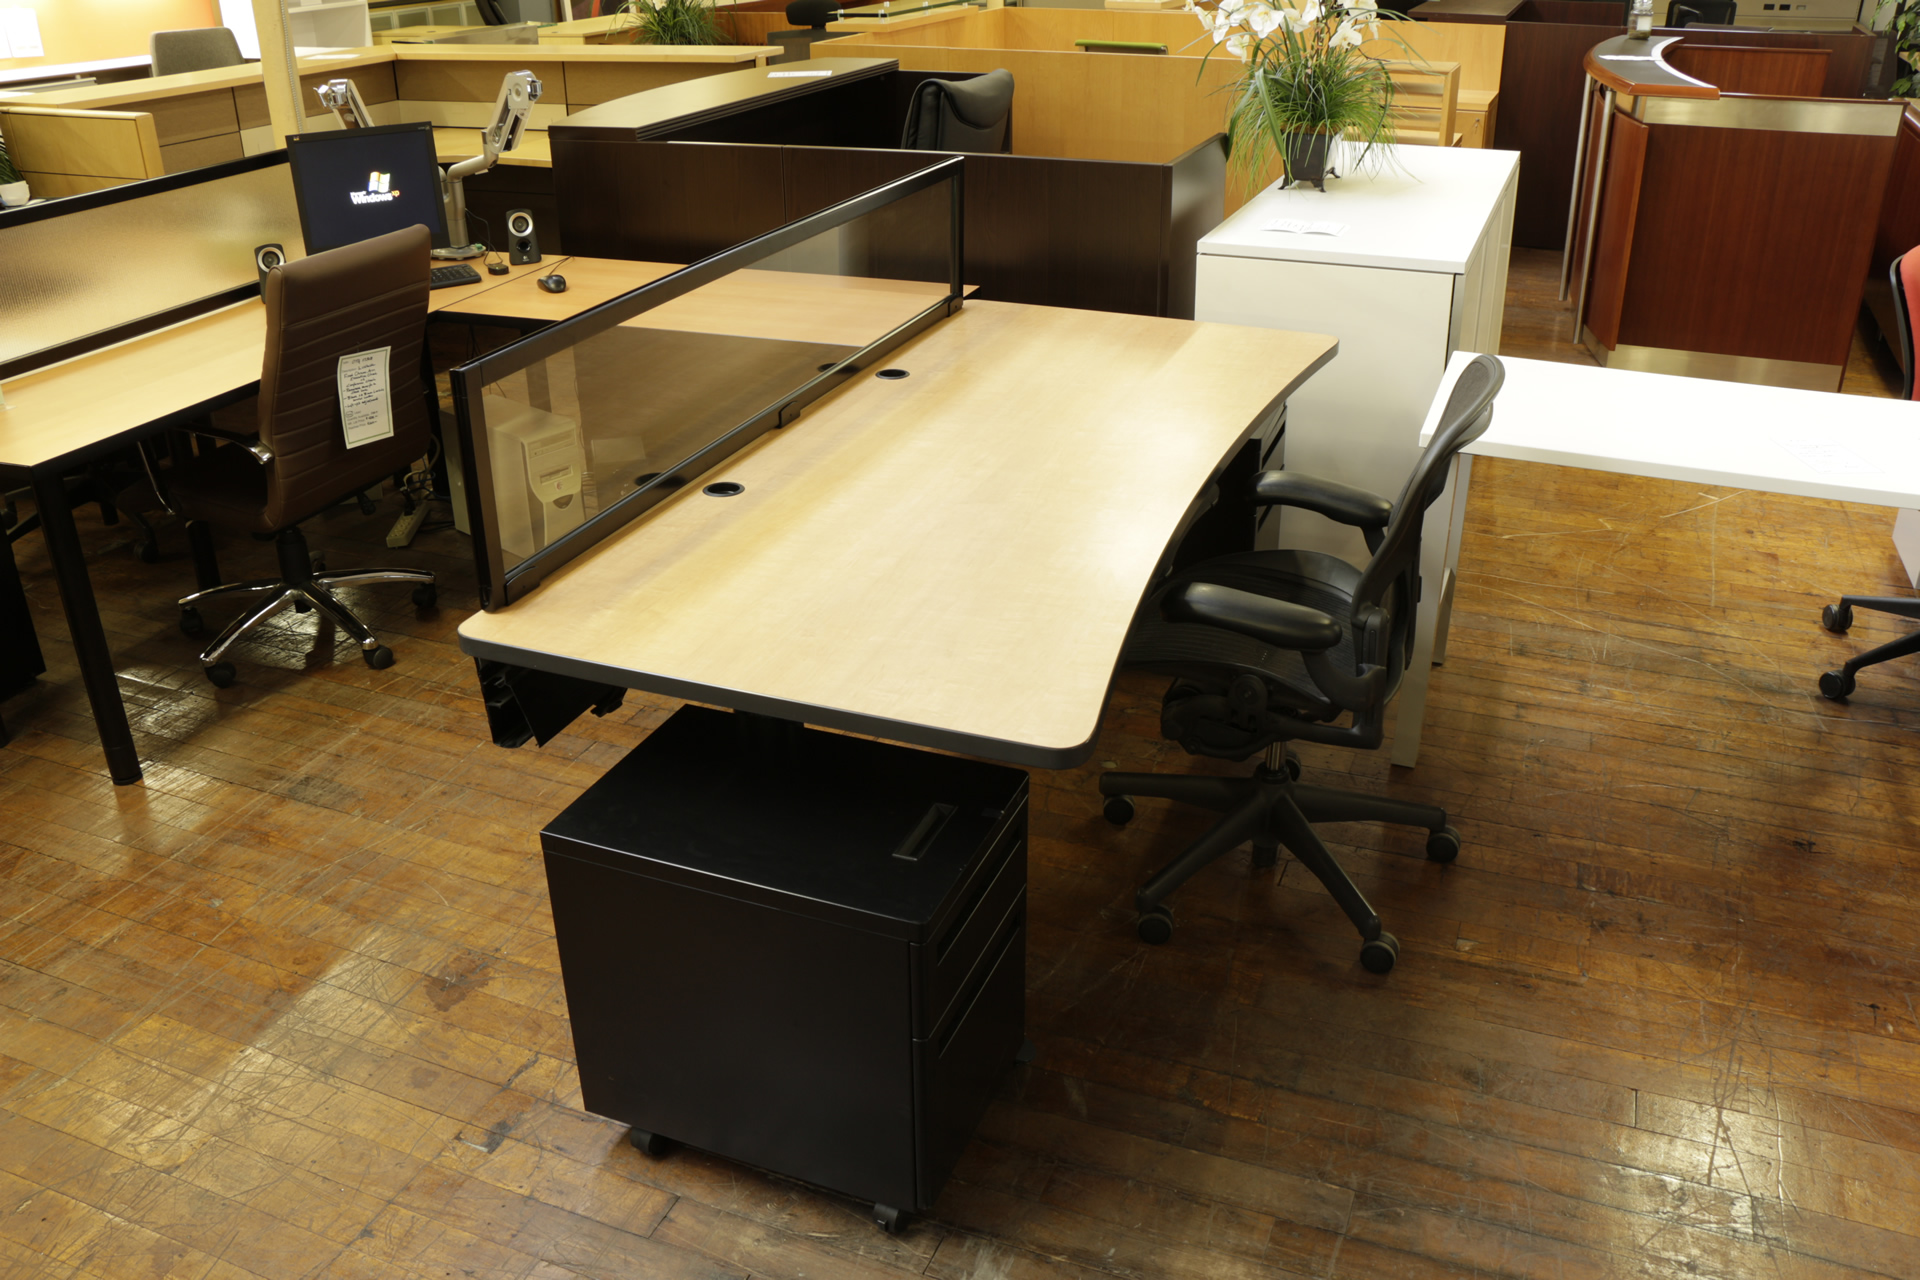 peartreeofficefurniture_peartreeofficefurniture_mg_1853.jpg